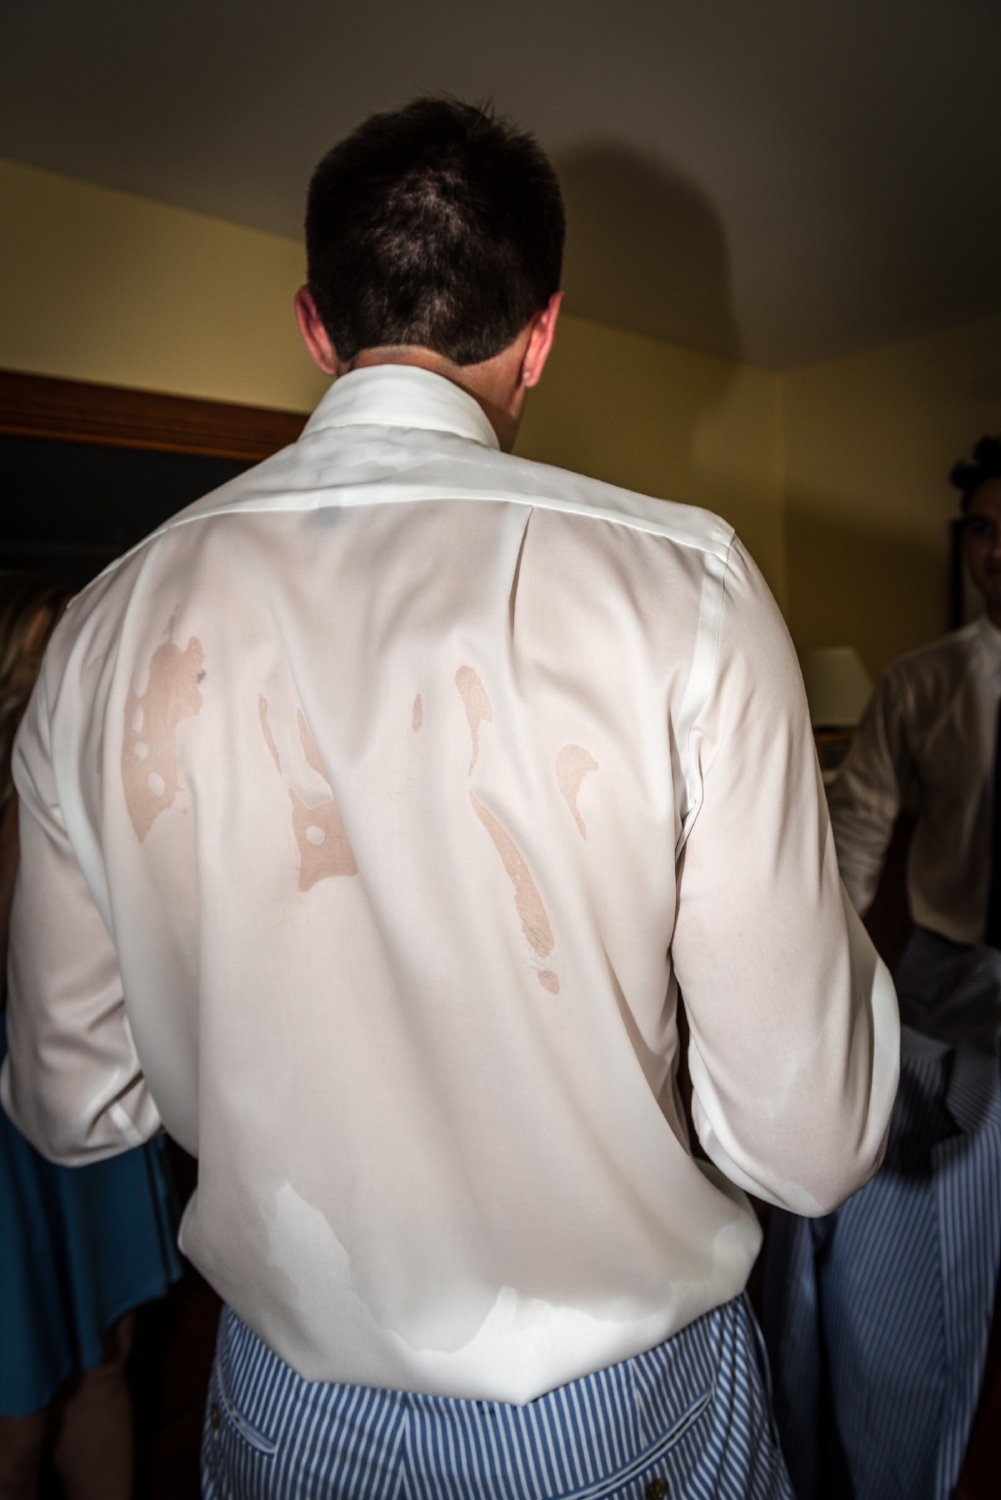 The groom soaked in sweat because It was 98 degrees in August